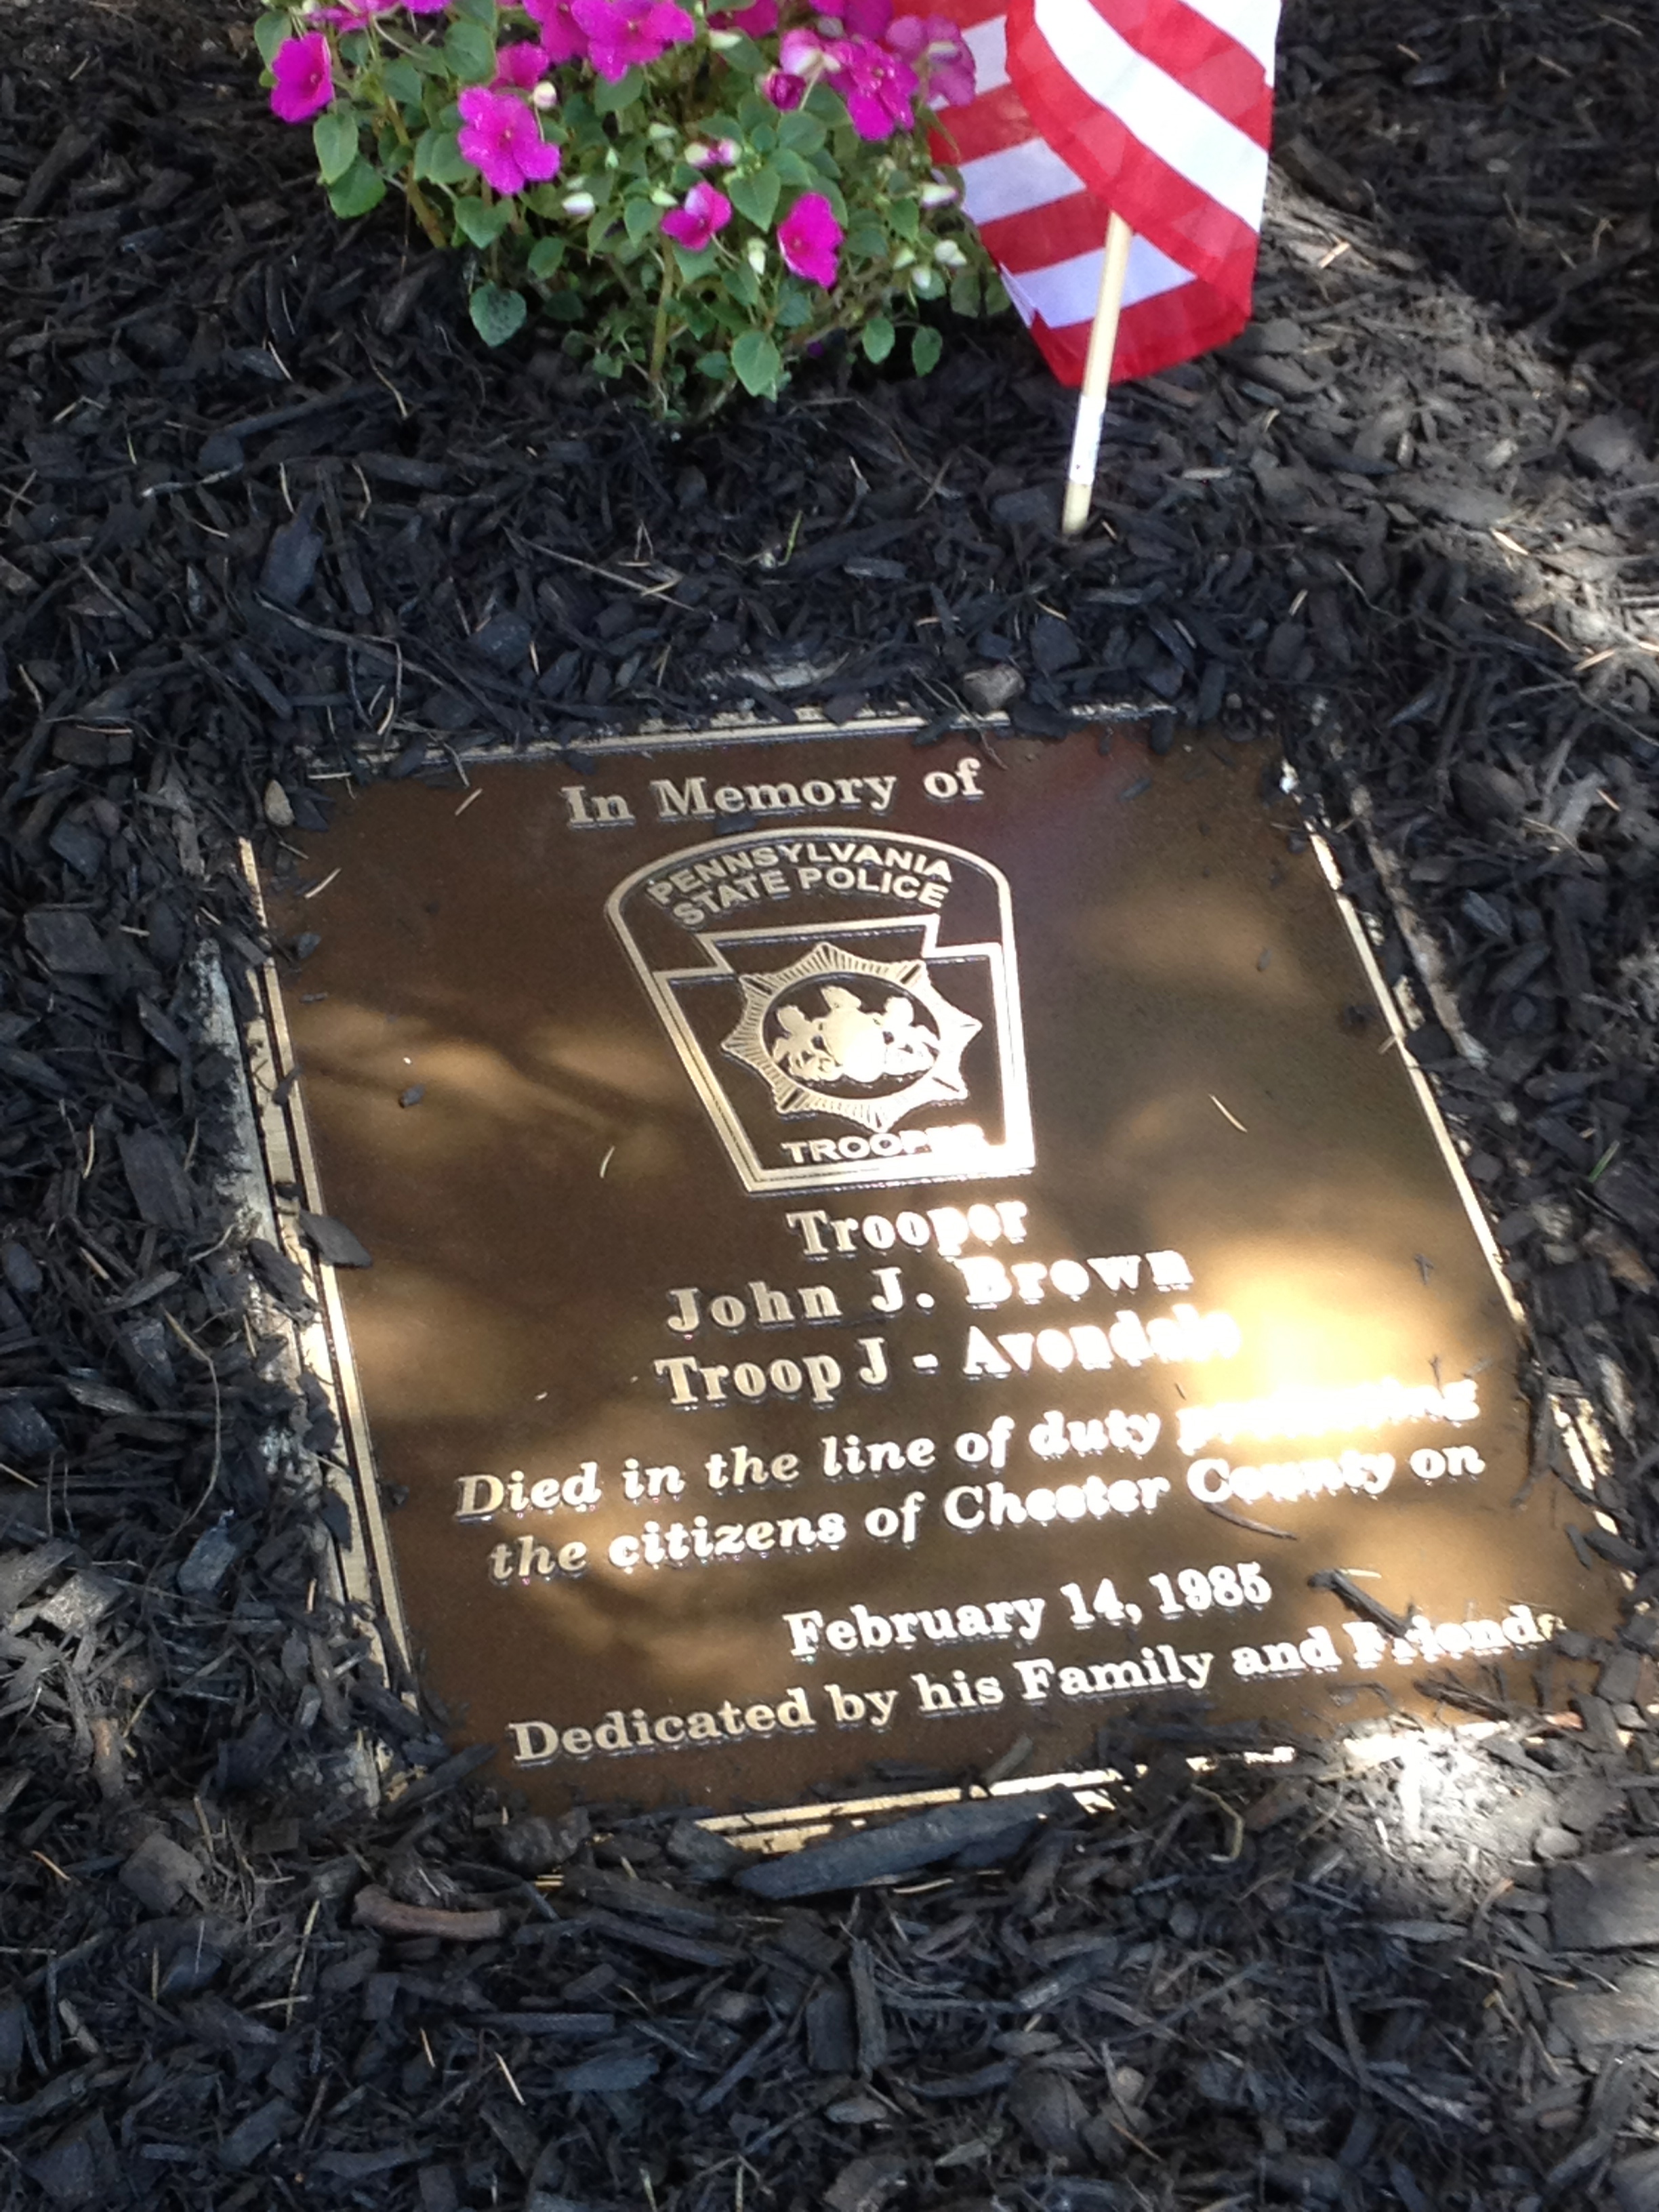 A bronze plaque commemorates the service of Pennsylvania State Trooper John J. Brown, who worked in the Avondale barracks.